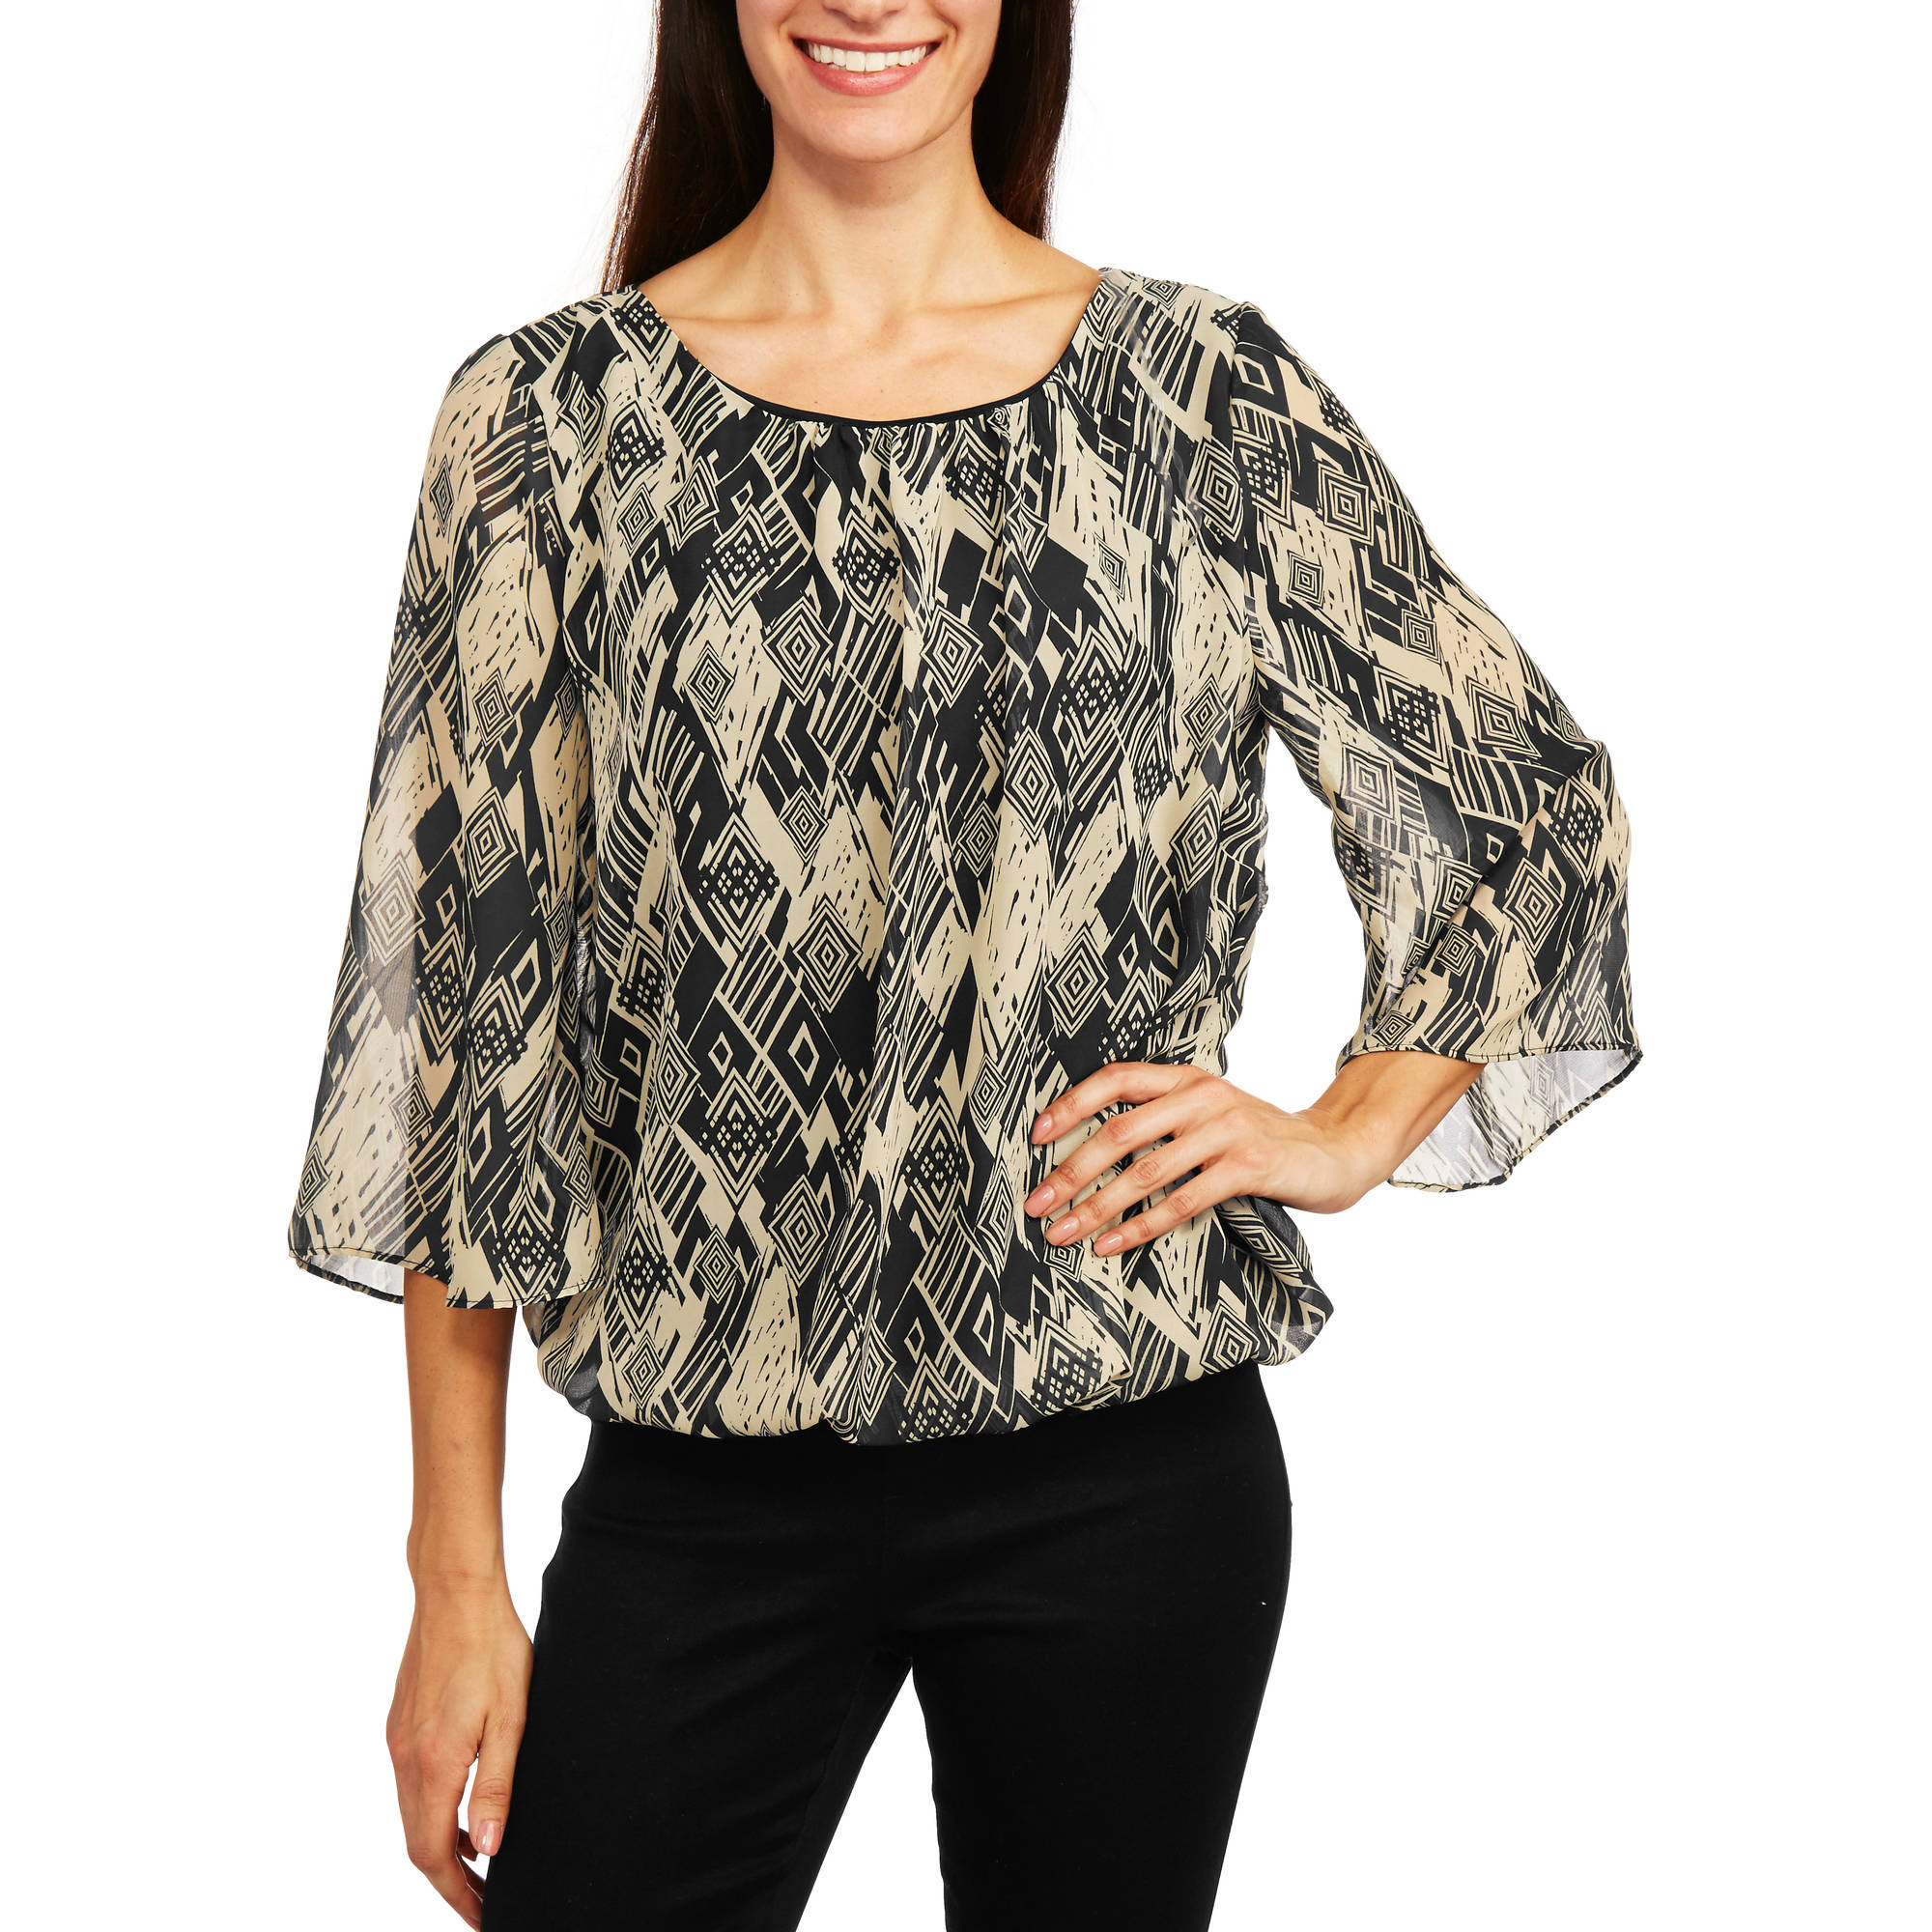 Glamour & Co. Women's Long Sleeve Tie Dye Printed Top